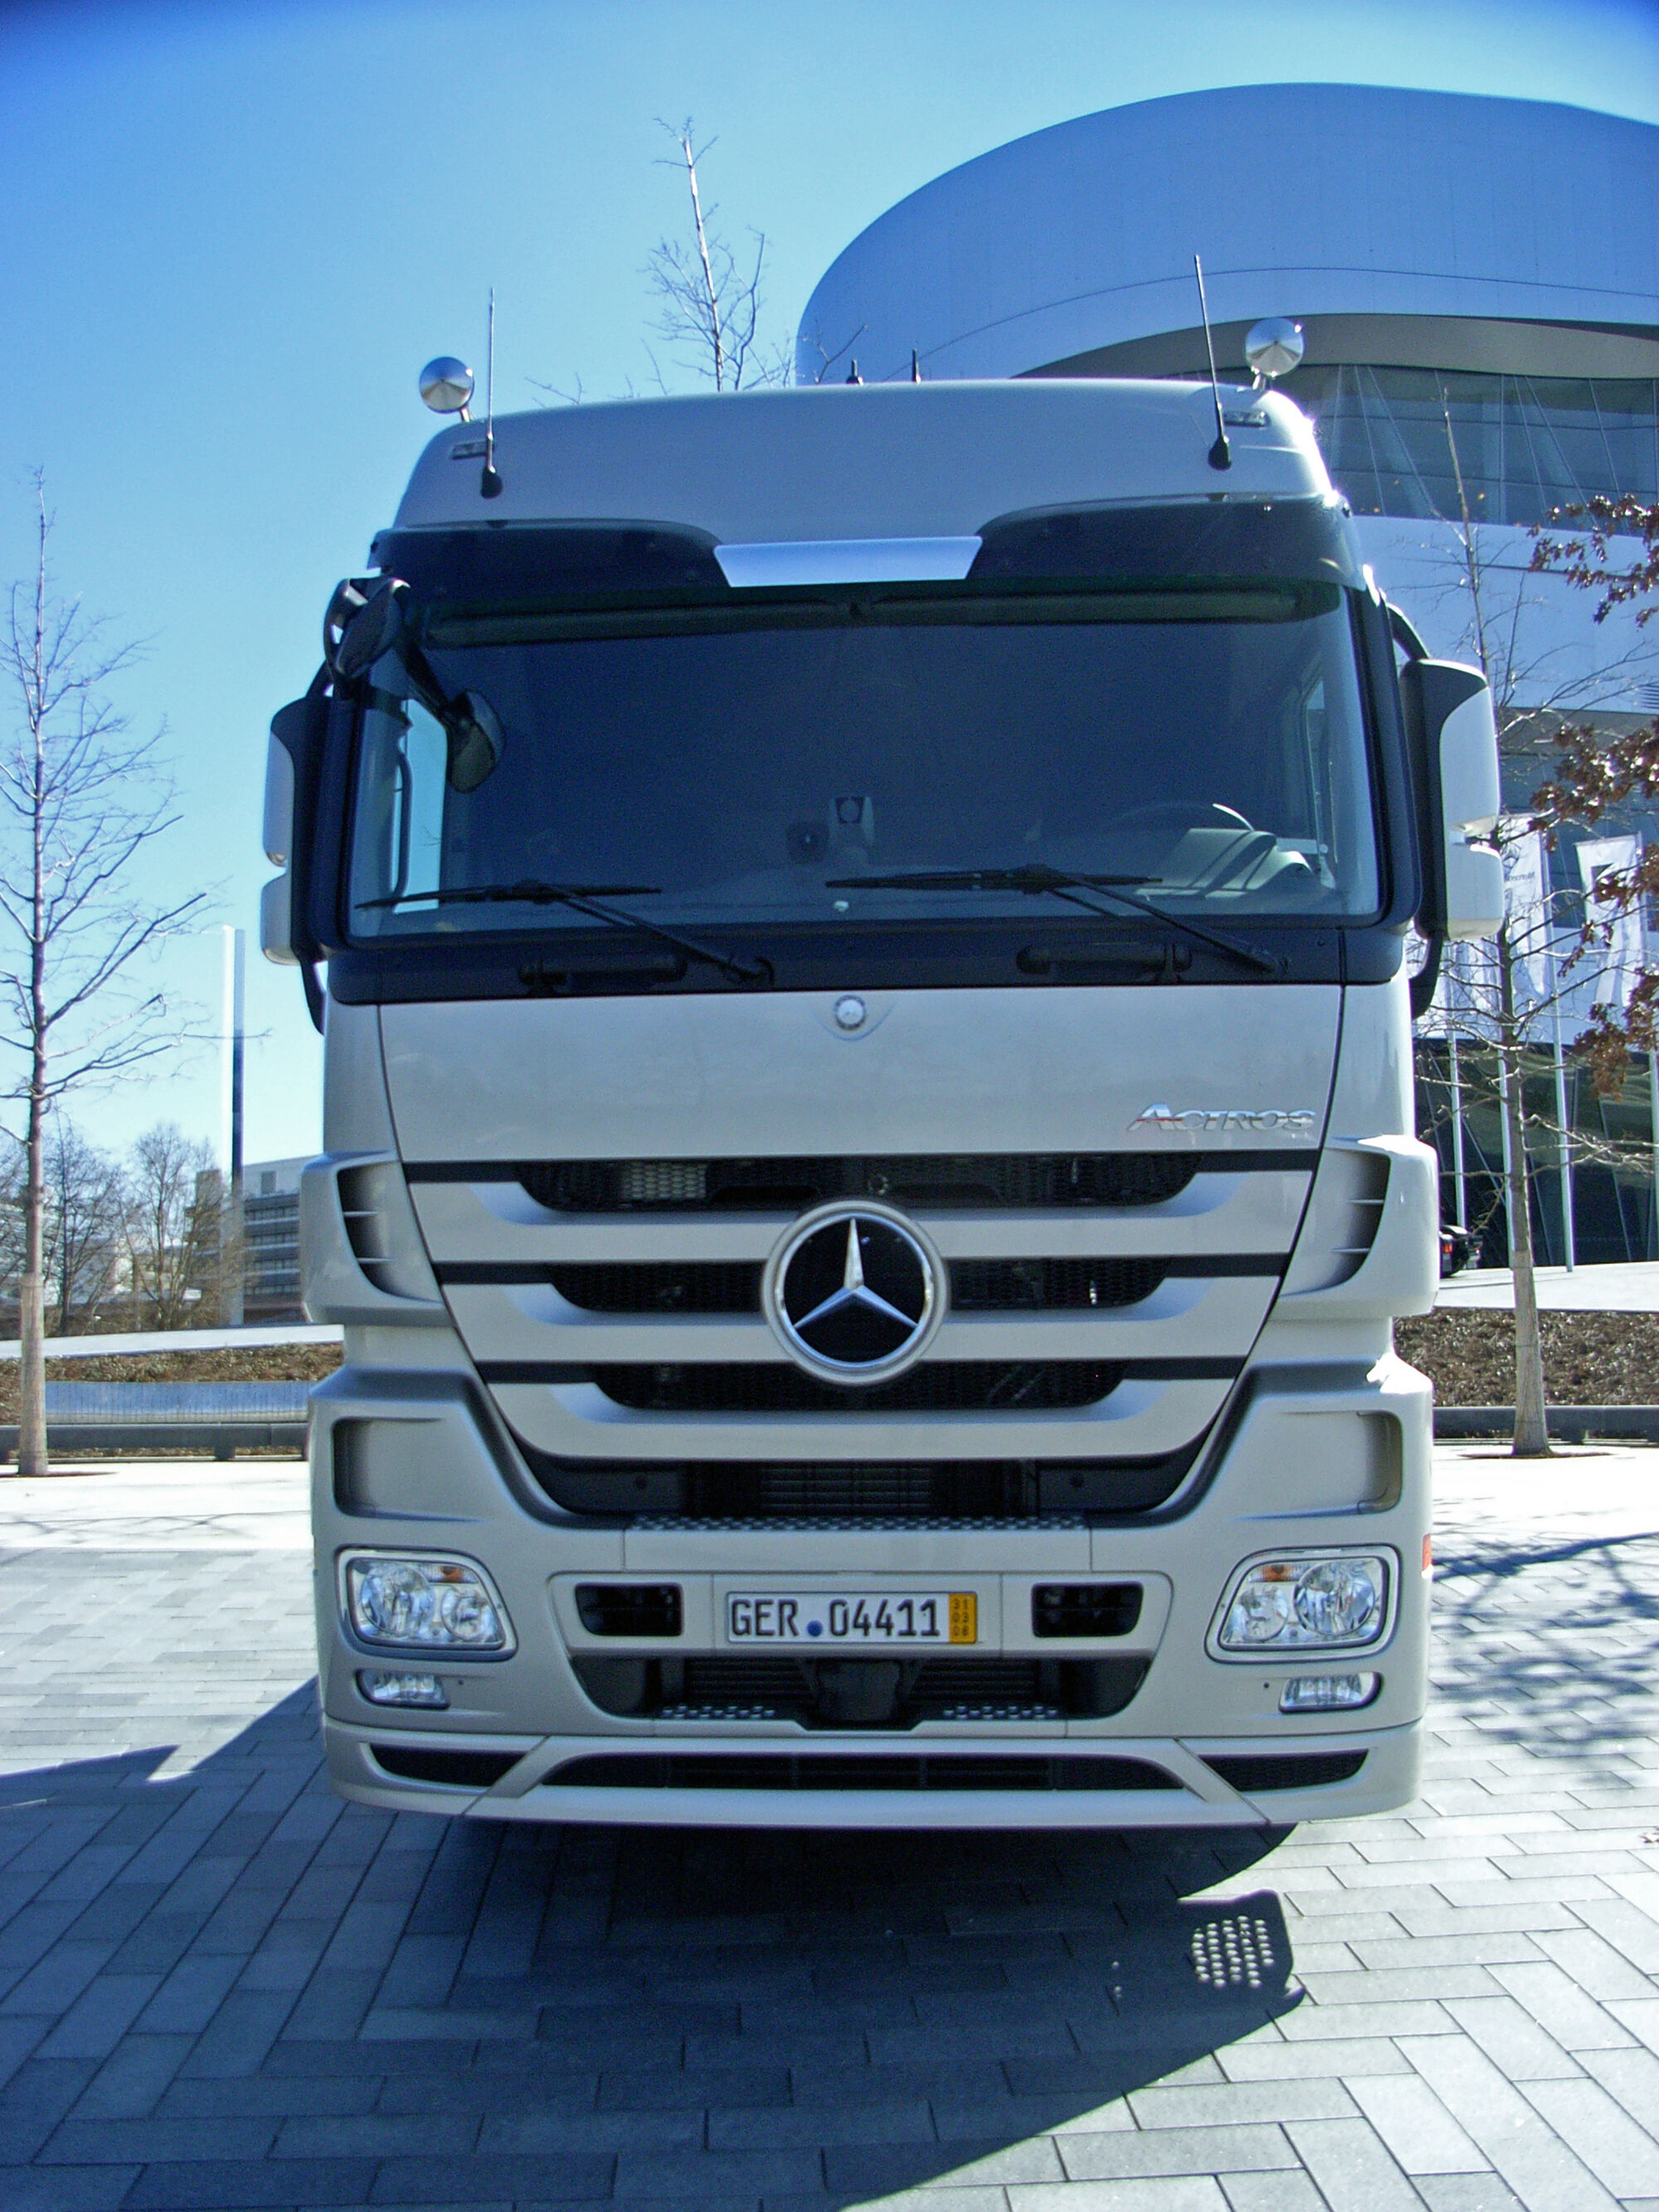 Mercedes benz 1848 axor more information - Image Mercedes Benz Actros 1848 Bluetec 5 4 Jpg Tractor Construction Plant Wiki Fandom Powered By Wikia